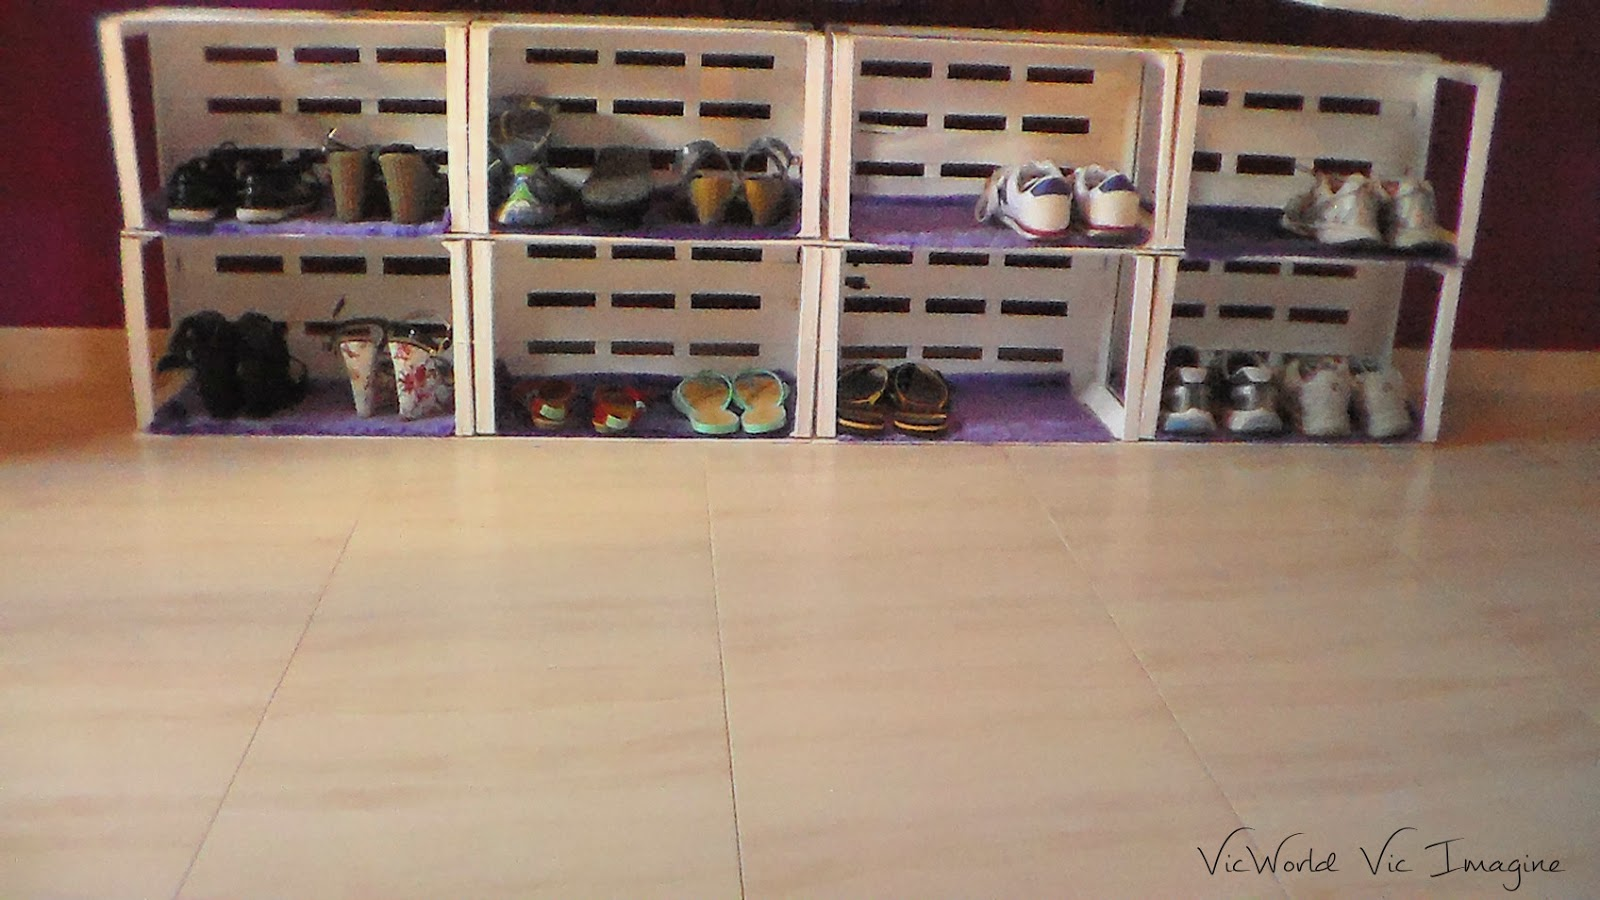 Vicworld vic imagine mi zapatero diy - Ideas para hacer un zapatero ...